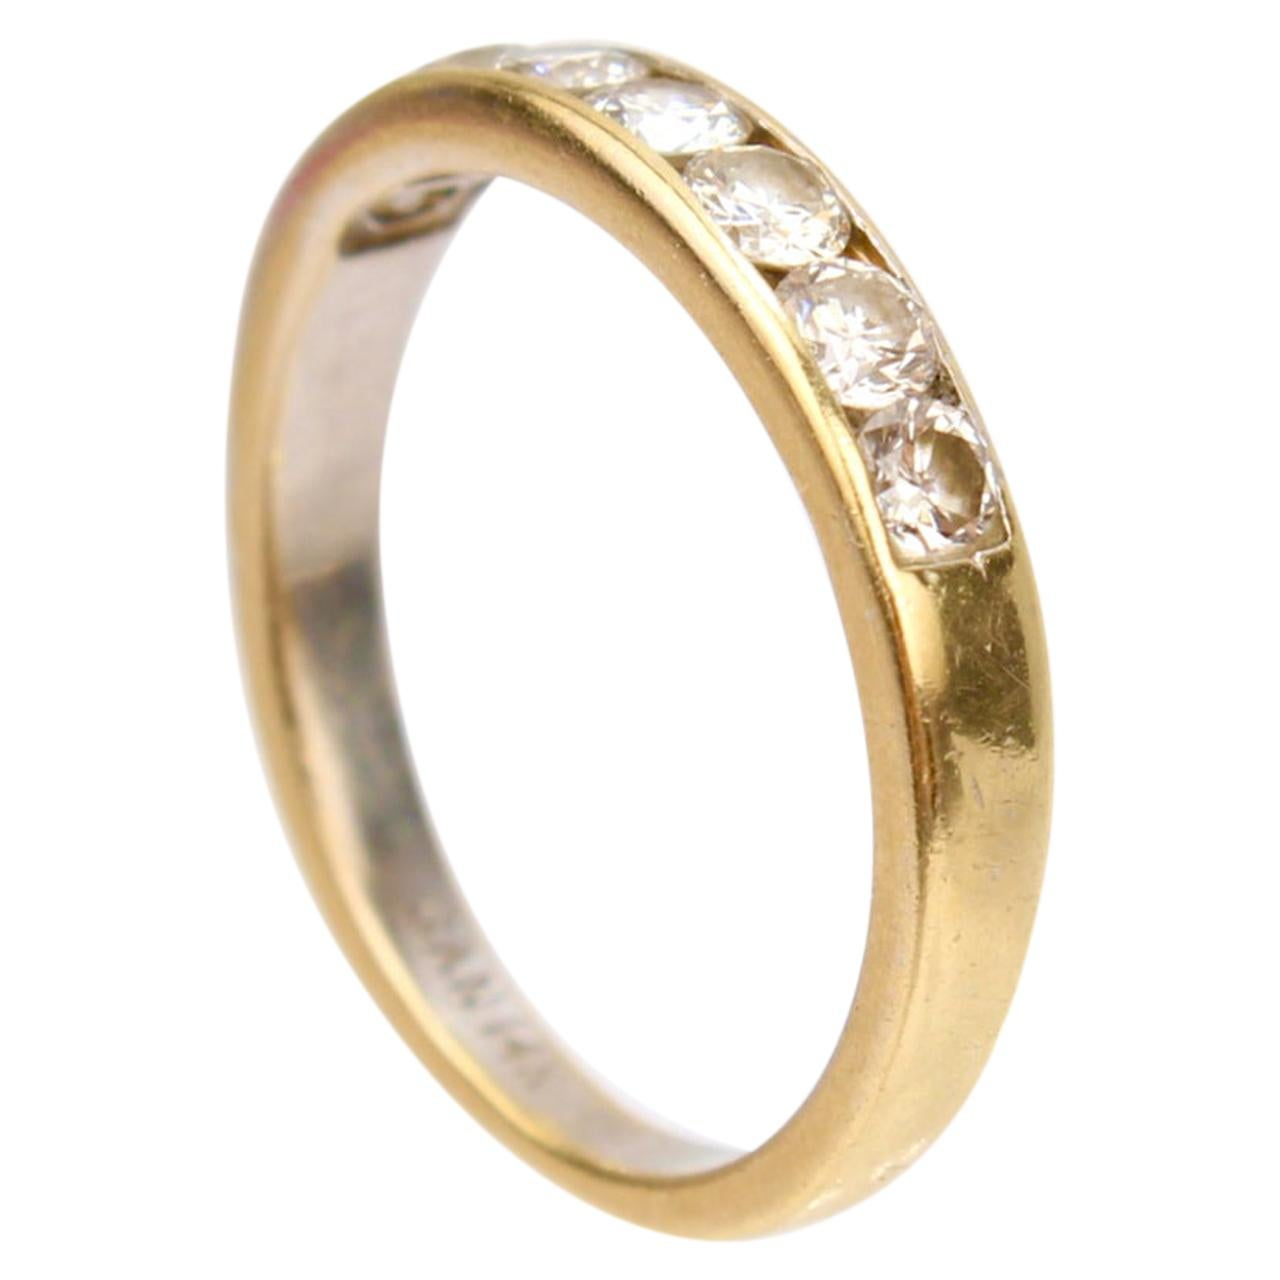 14 Karat Gold and Channel Set Diamond Wedding Band Ring